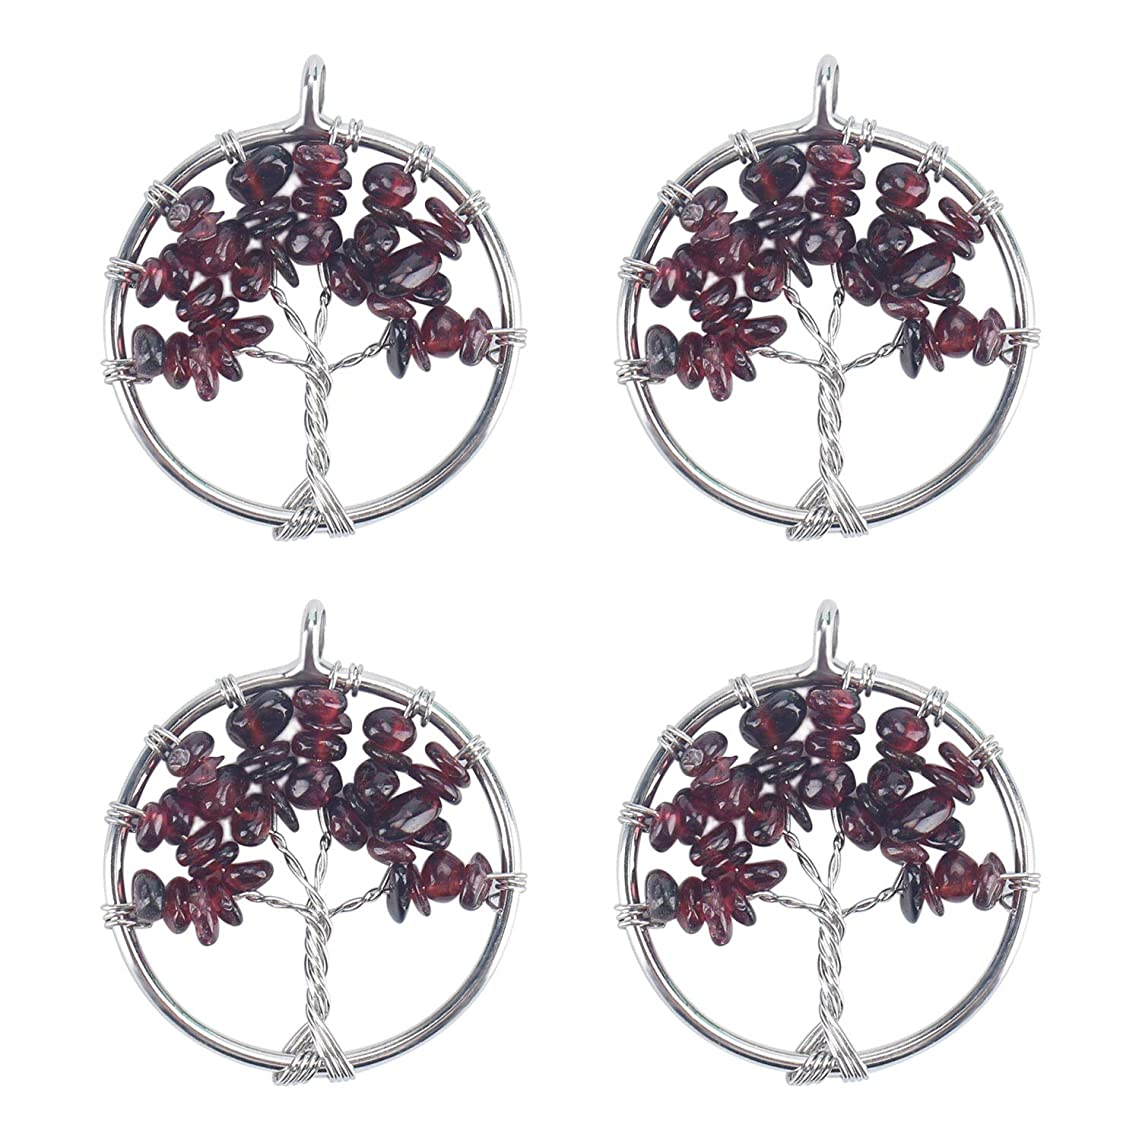 Wholesale 4 PCS Family Tree of Life Pendant Handmade Wire Wrapped Natural Garnet Quartz Chakra Bulk for Jewelry Making